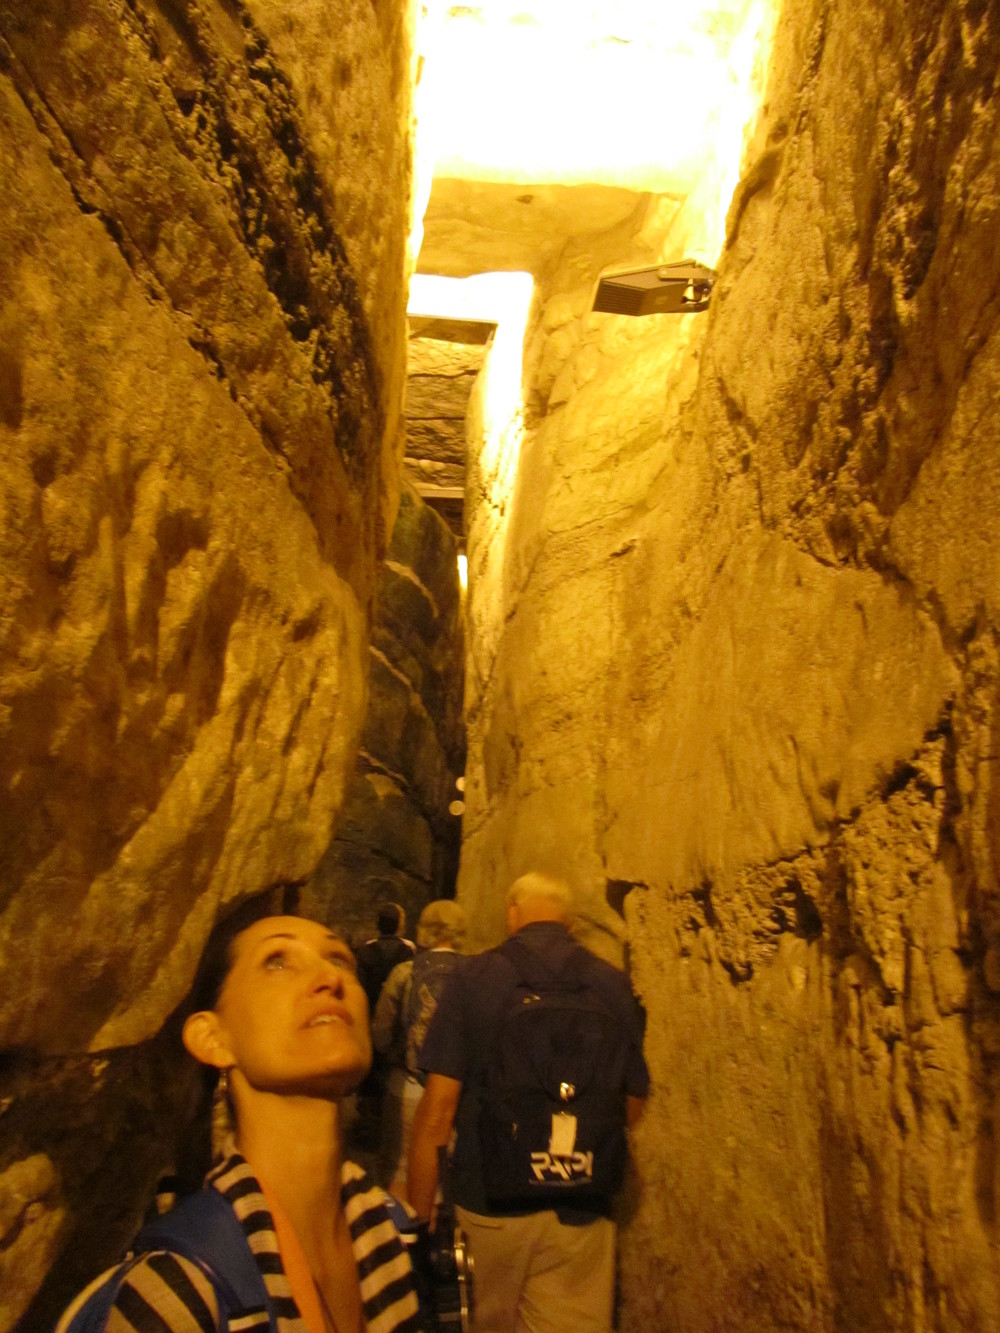 Pam Checking Out the Western Wall Tunnel